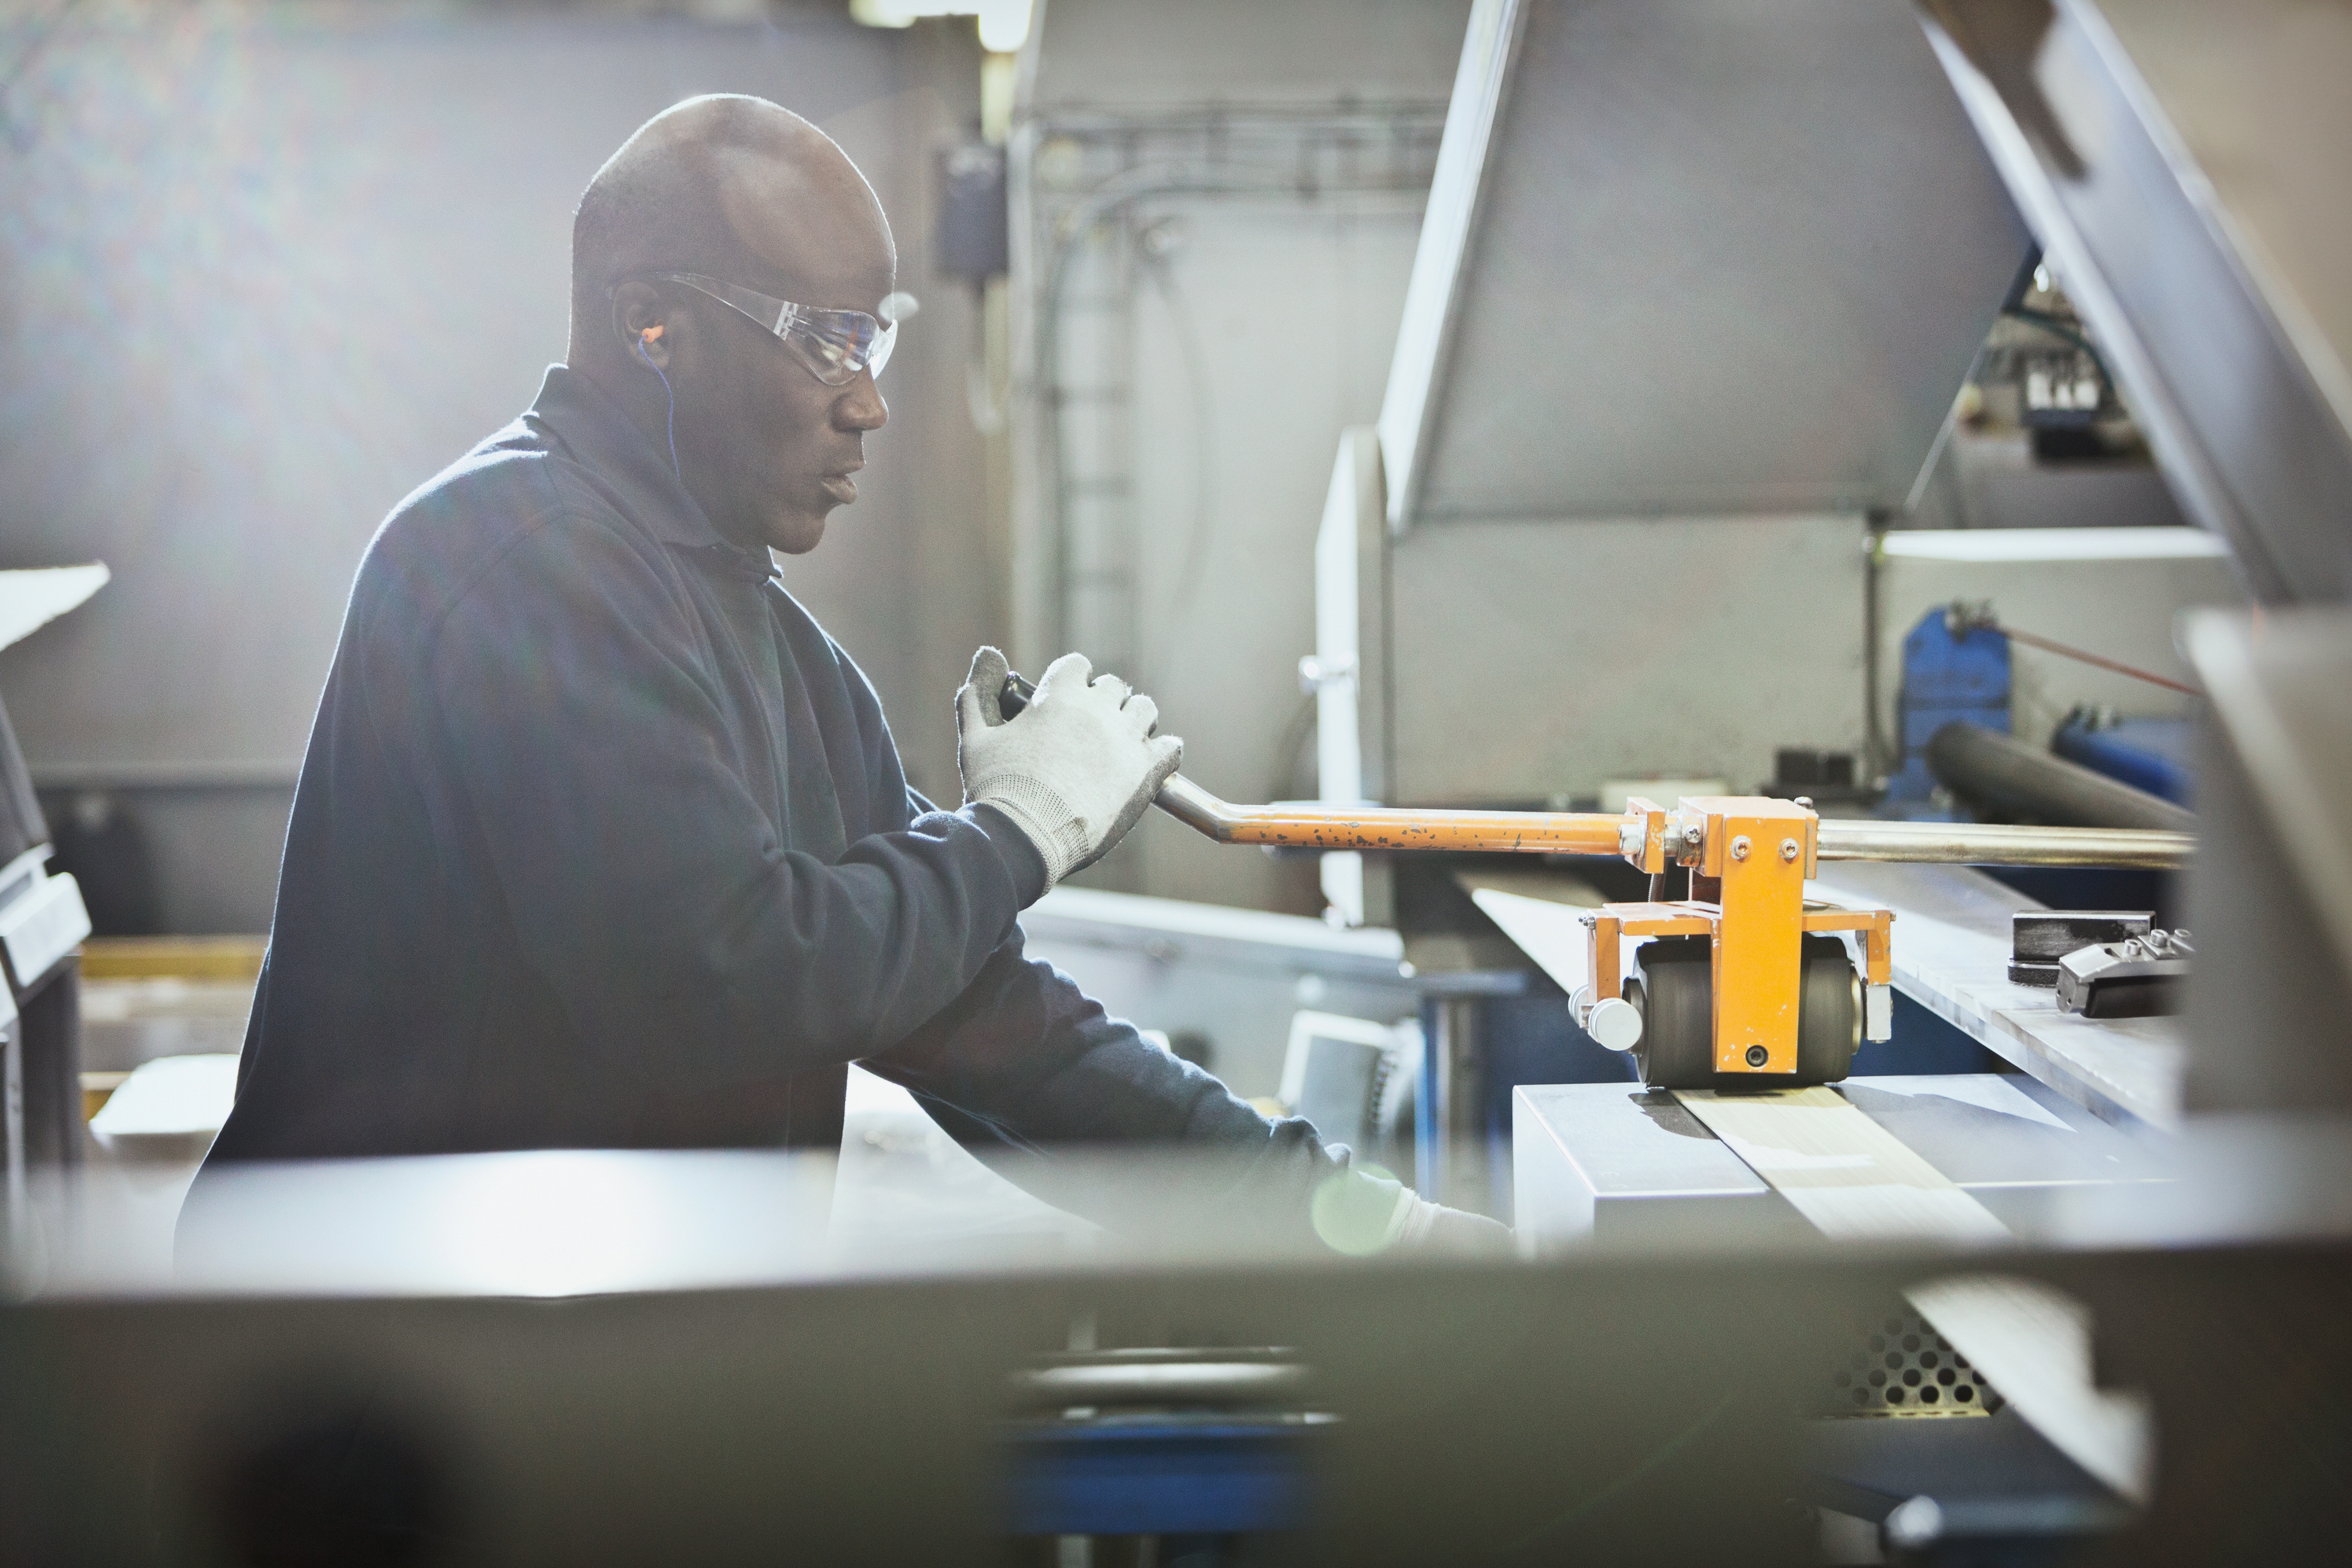 man safety glasses manufacturing.jpg